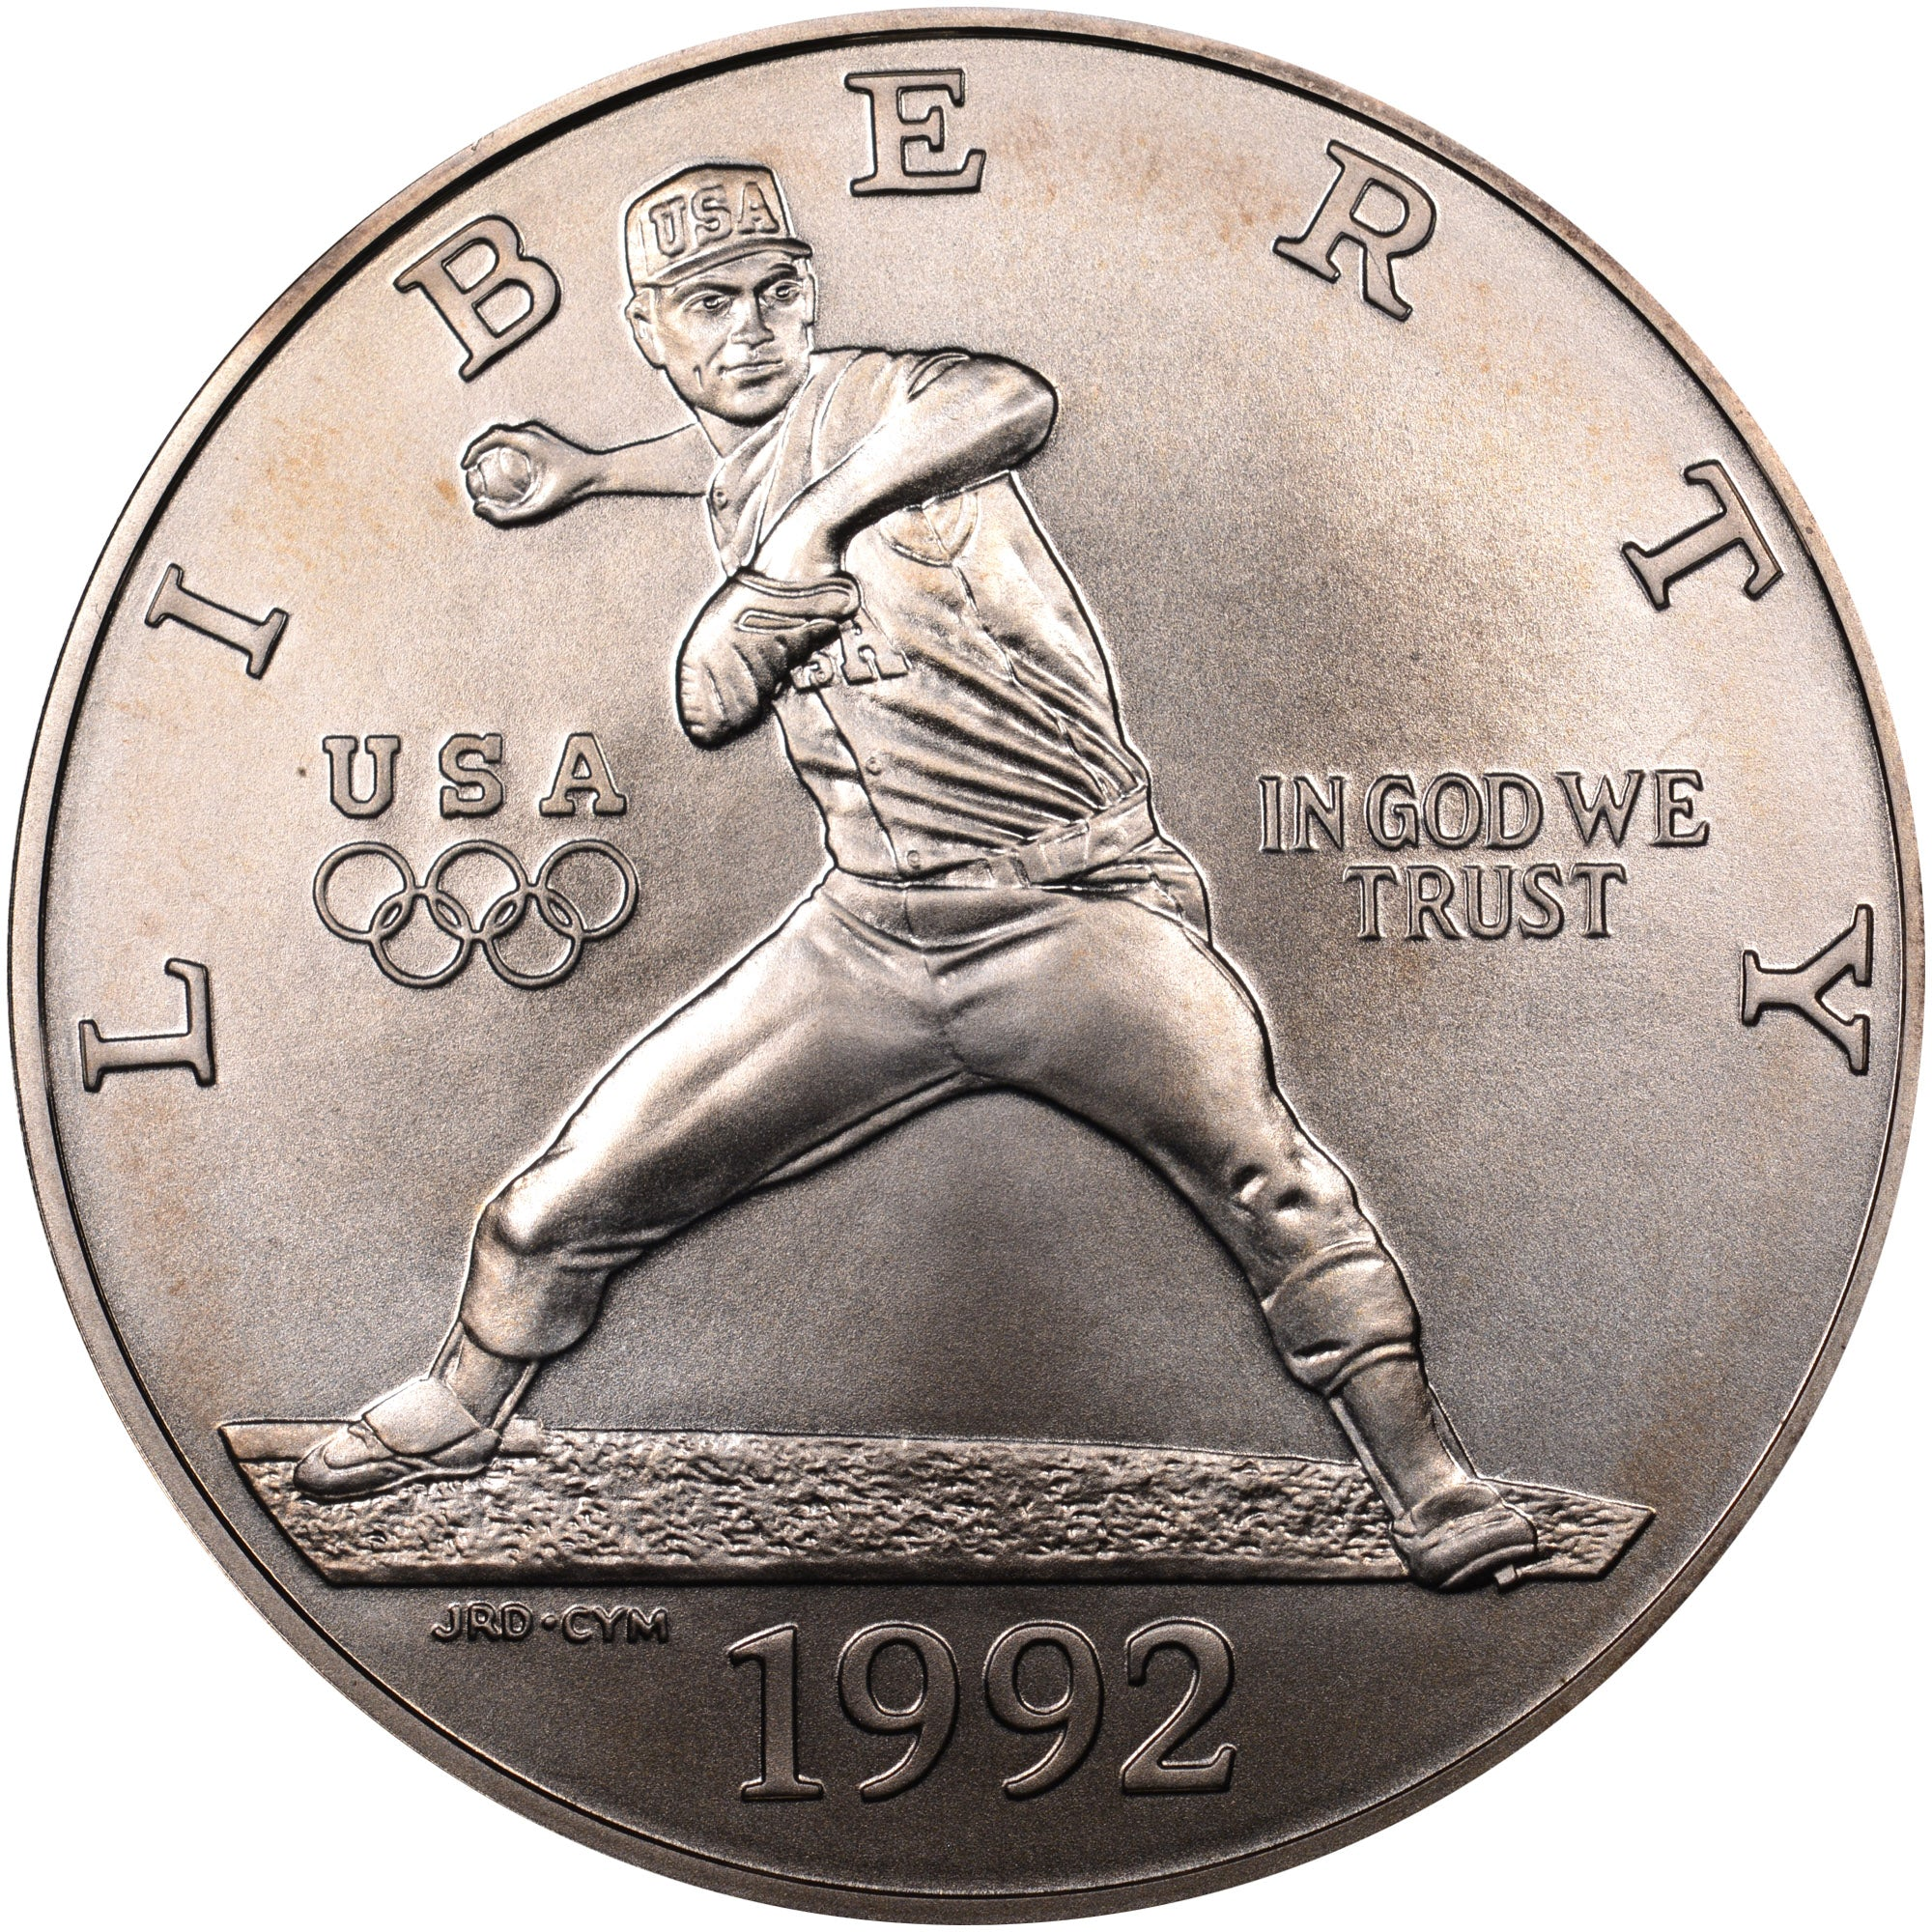 1992-D Olympic Baseball Commemorative Silver Dollar Mint State